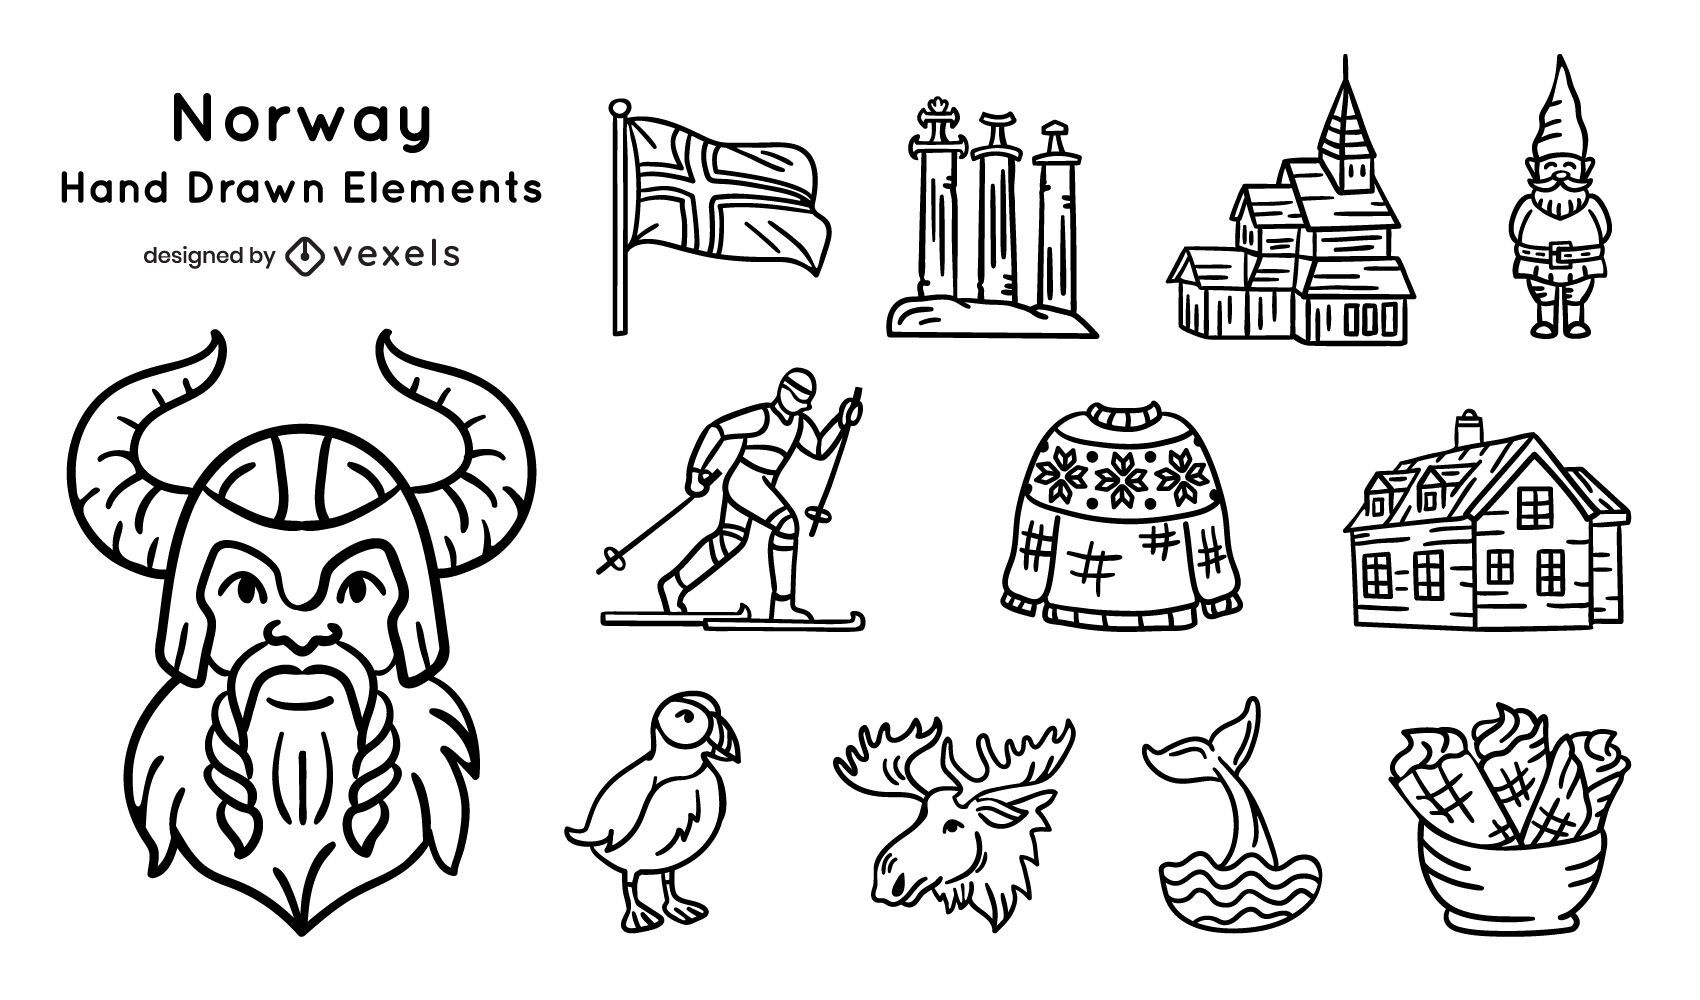 Norway Hand Drawn Elements Pack